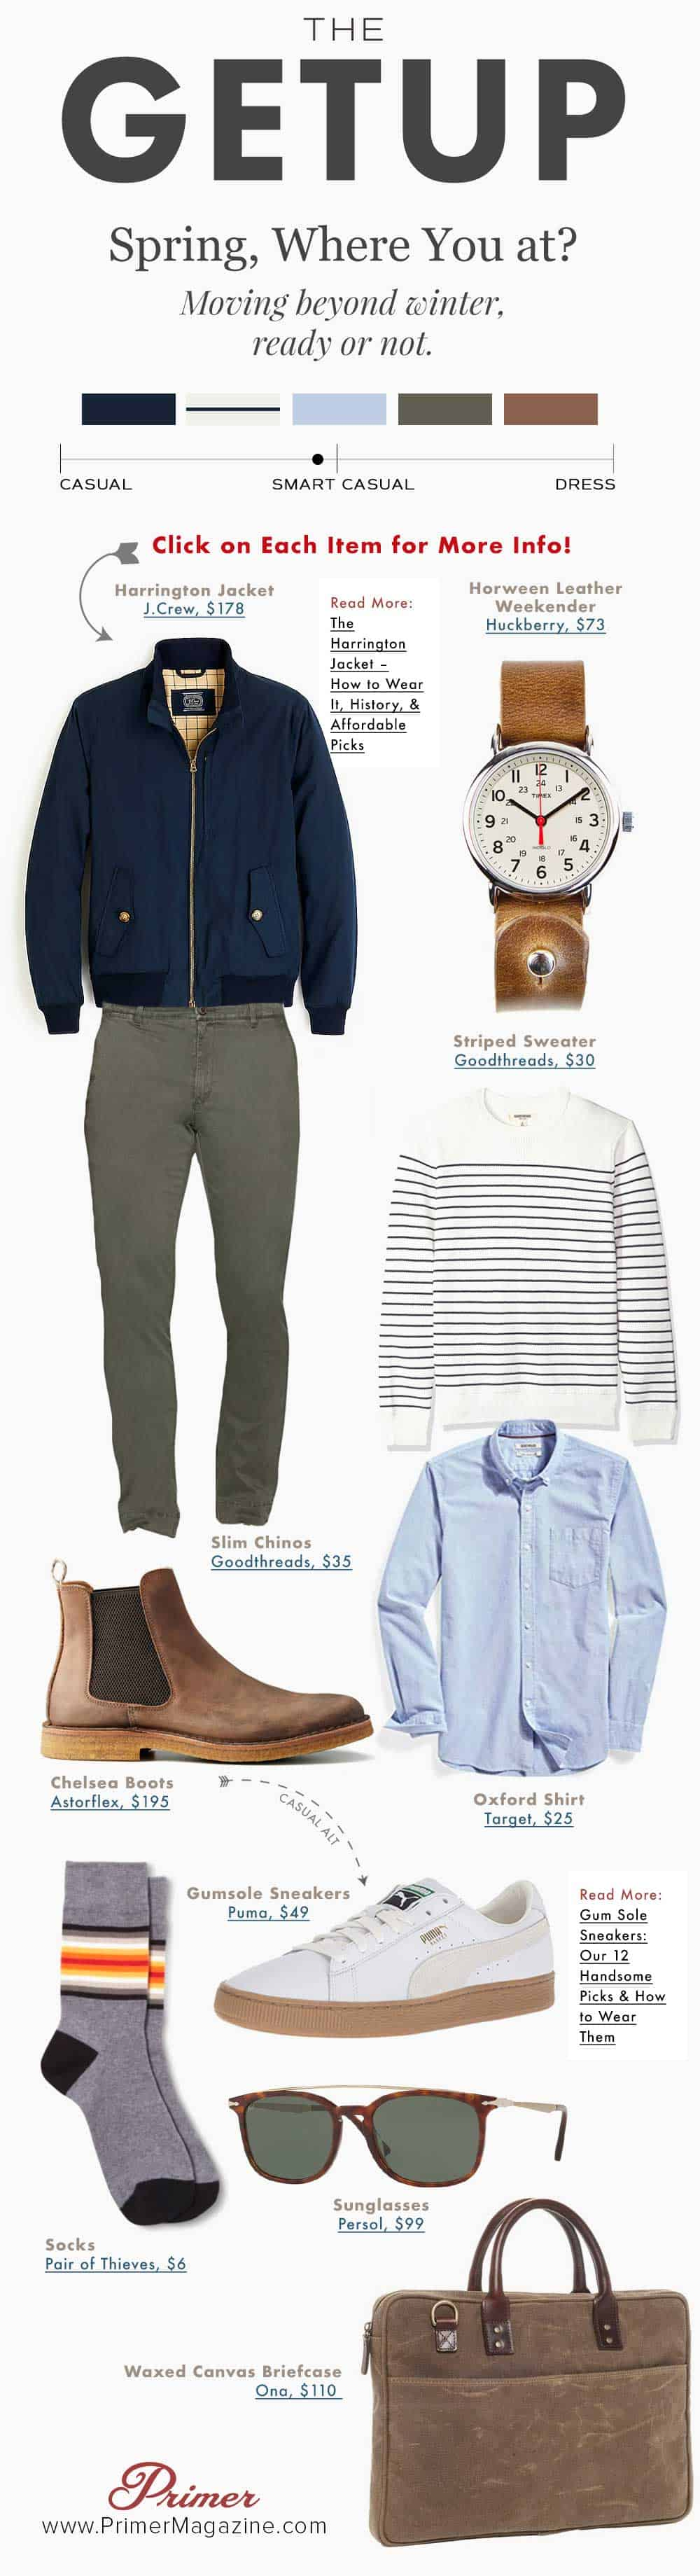 The Getup: Spring Where You At - Men's Spring Outfit Ideas